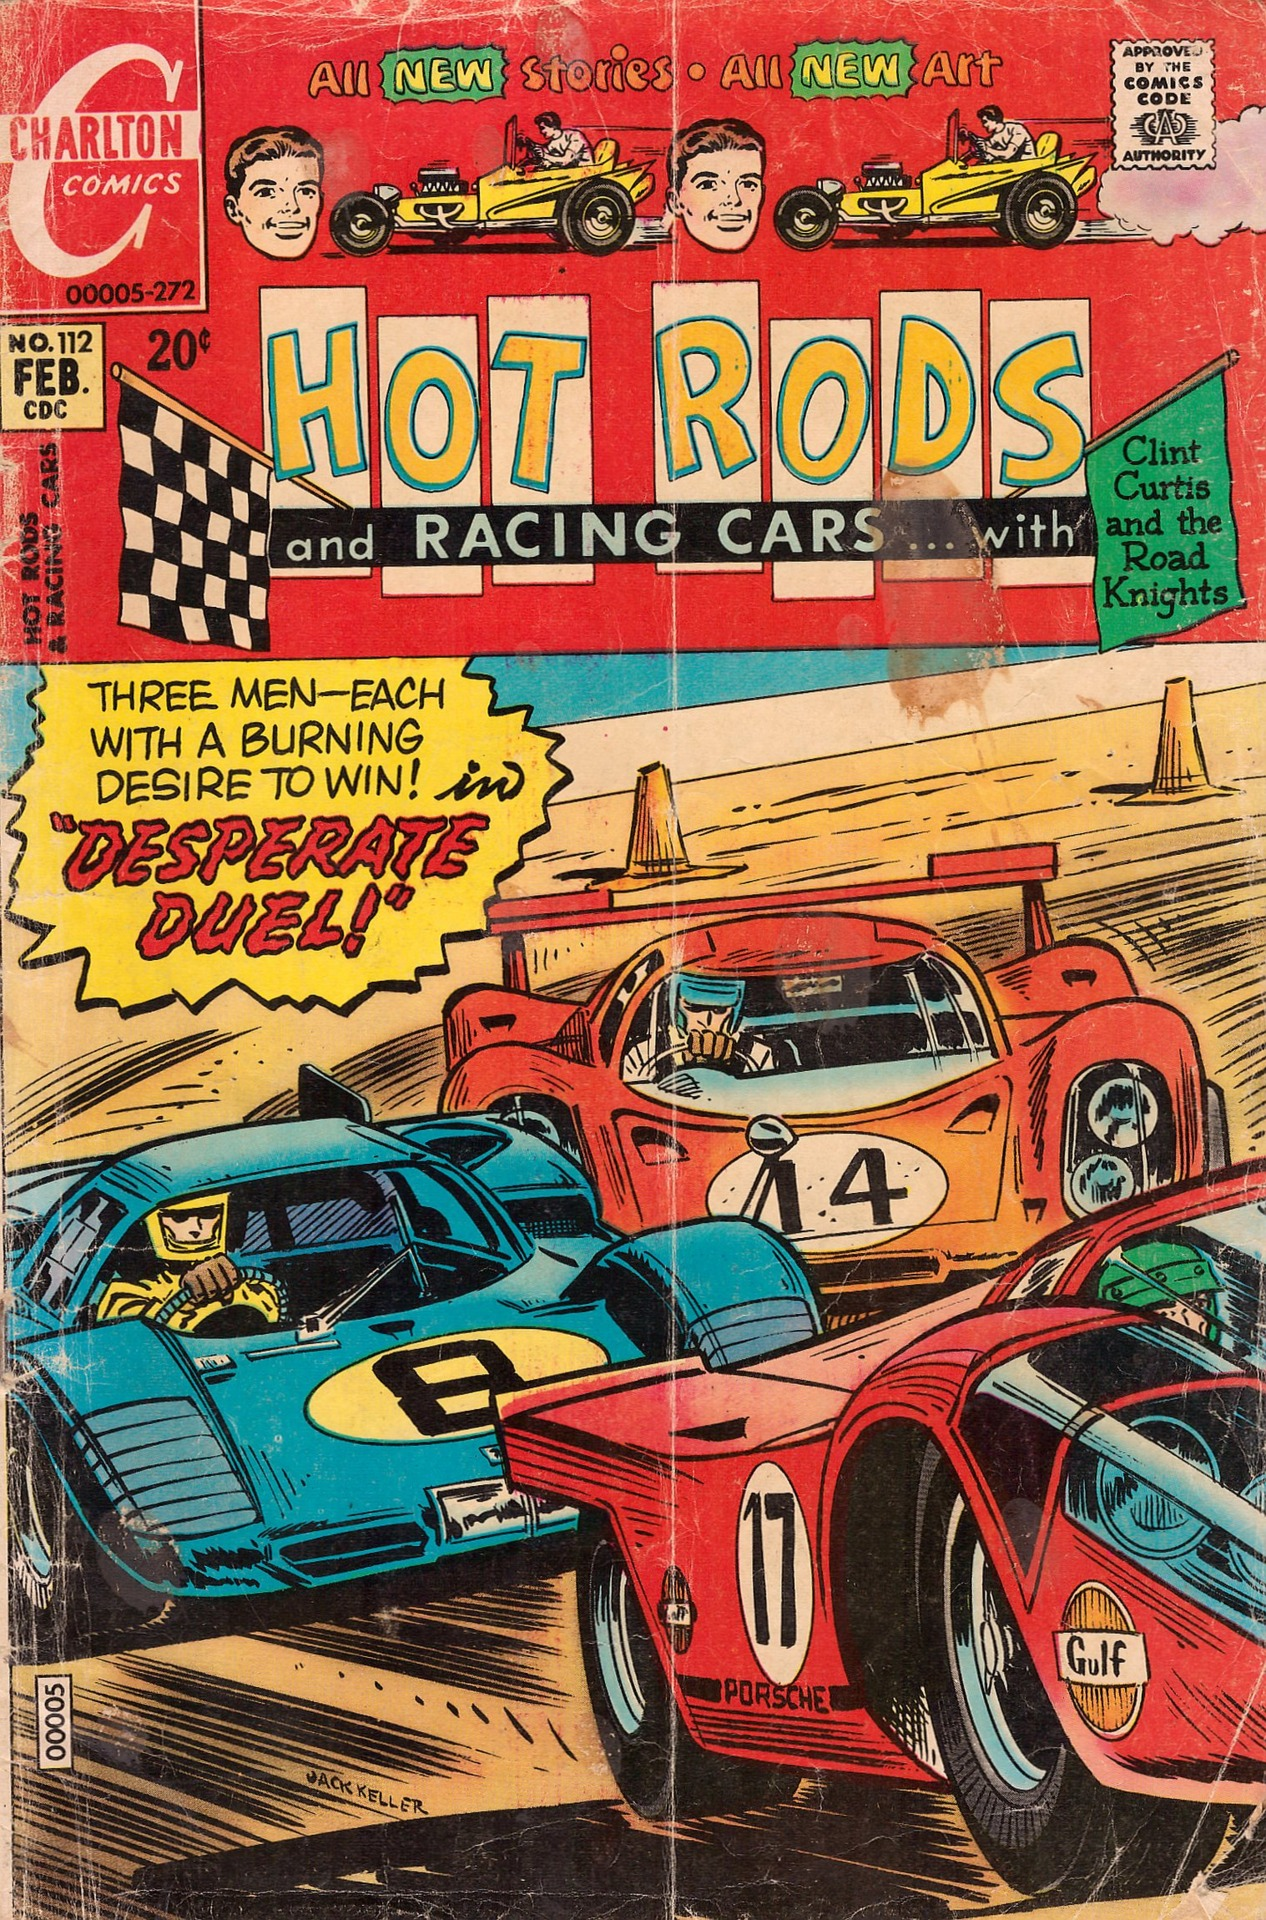 I love this cover because it reminds me of my old Tyco slot cars set